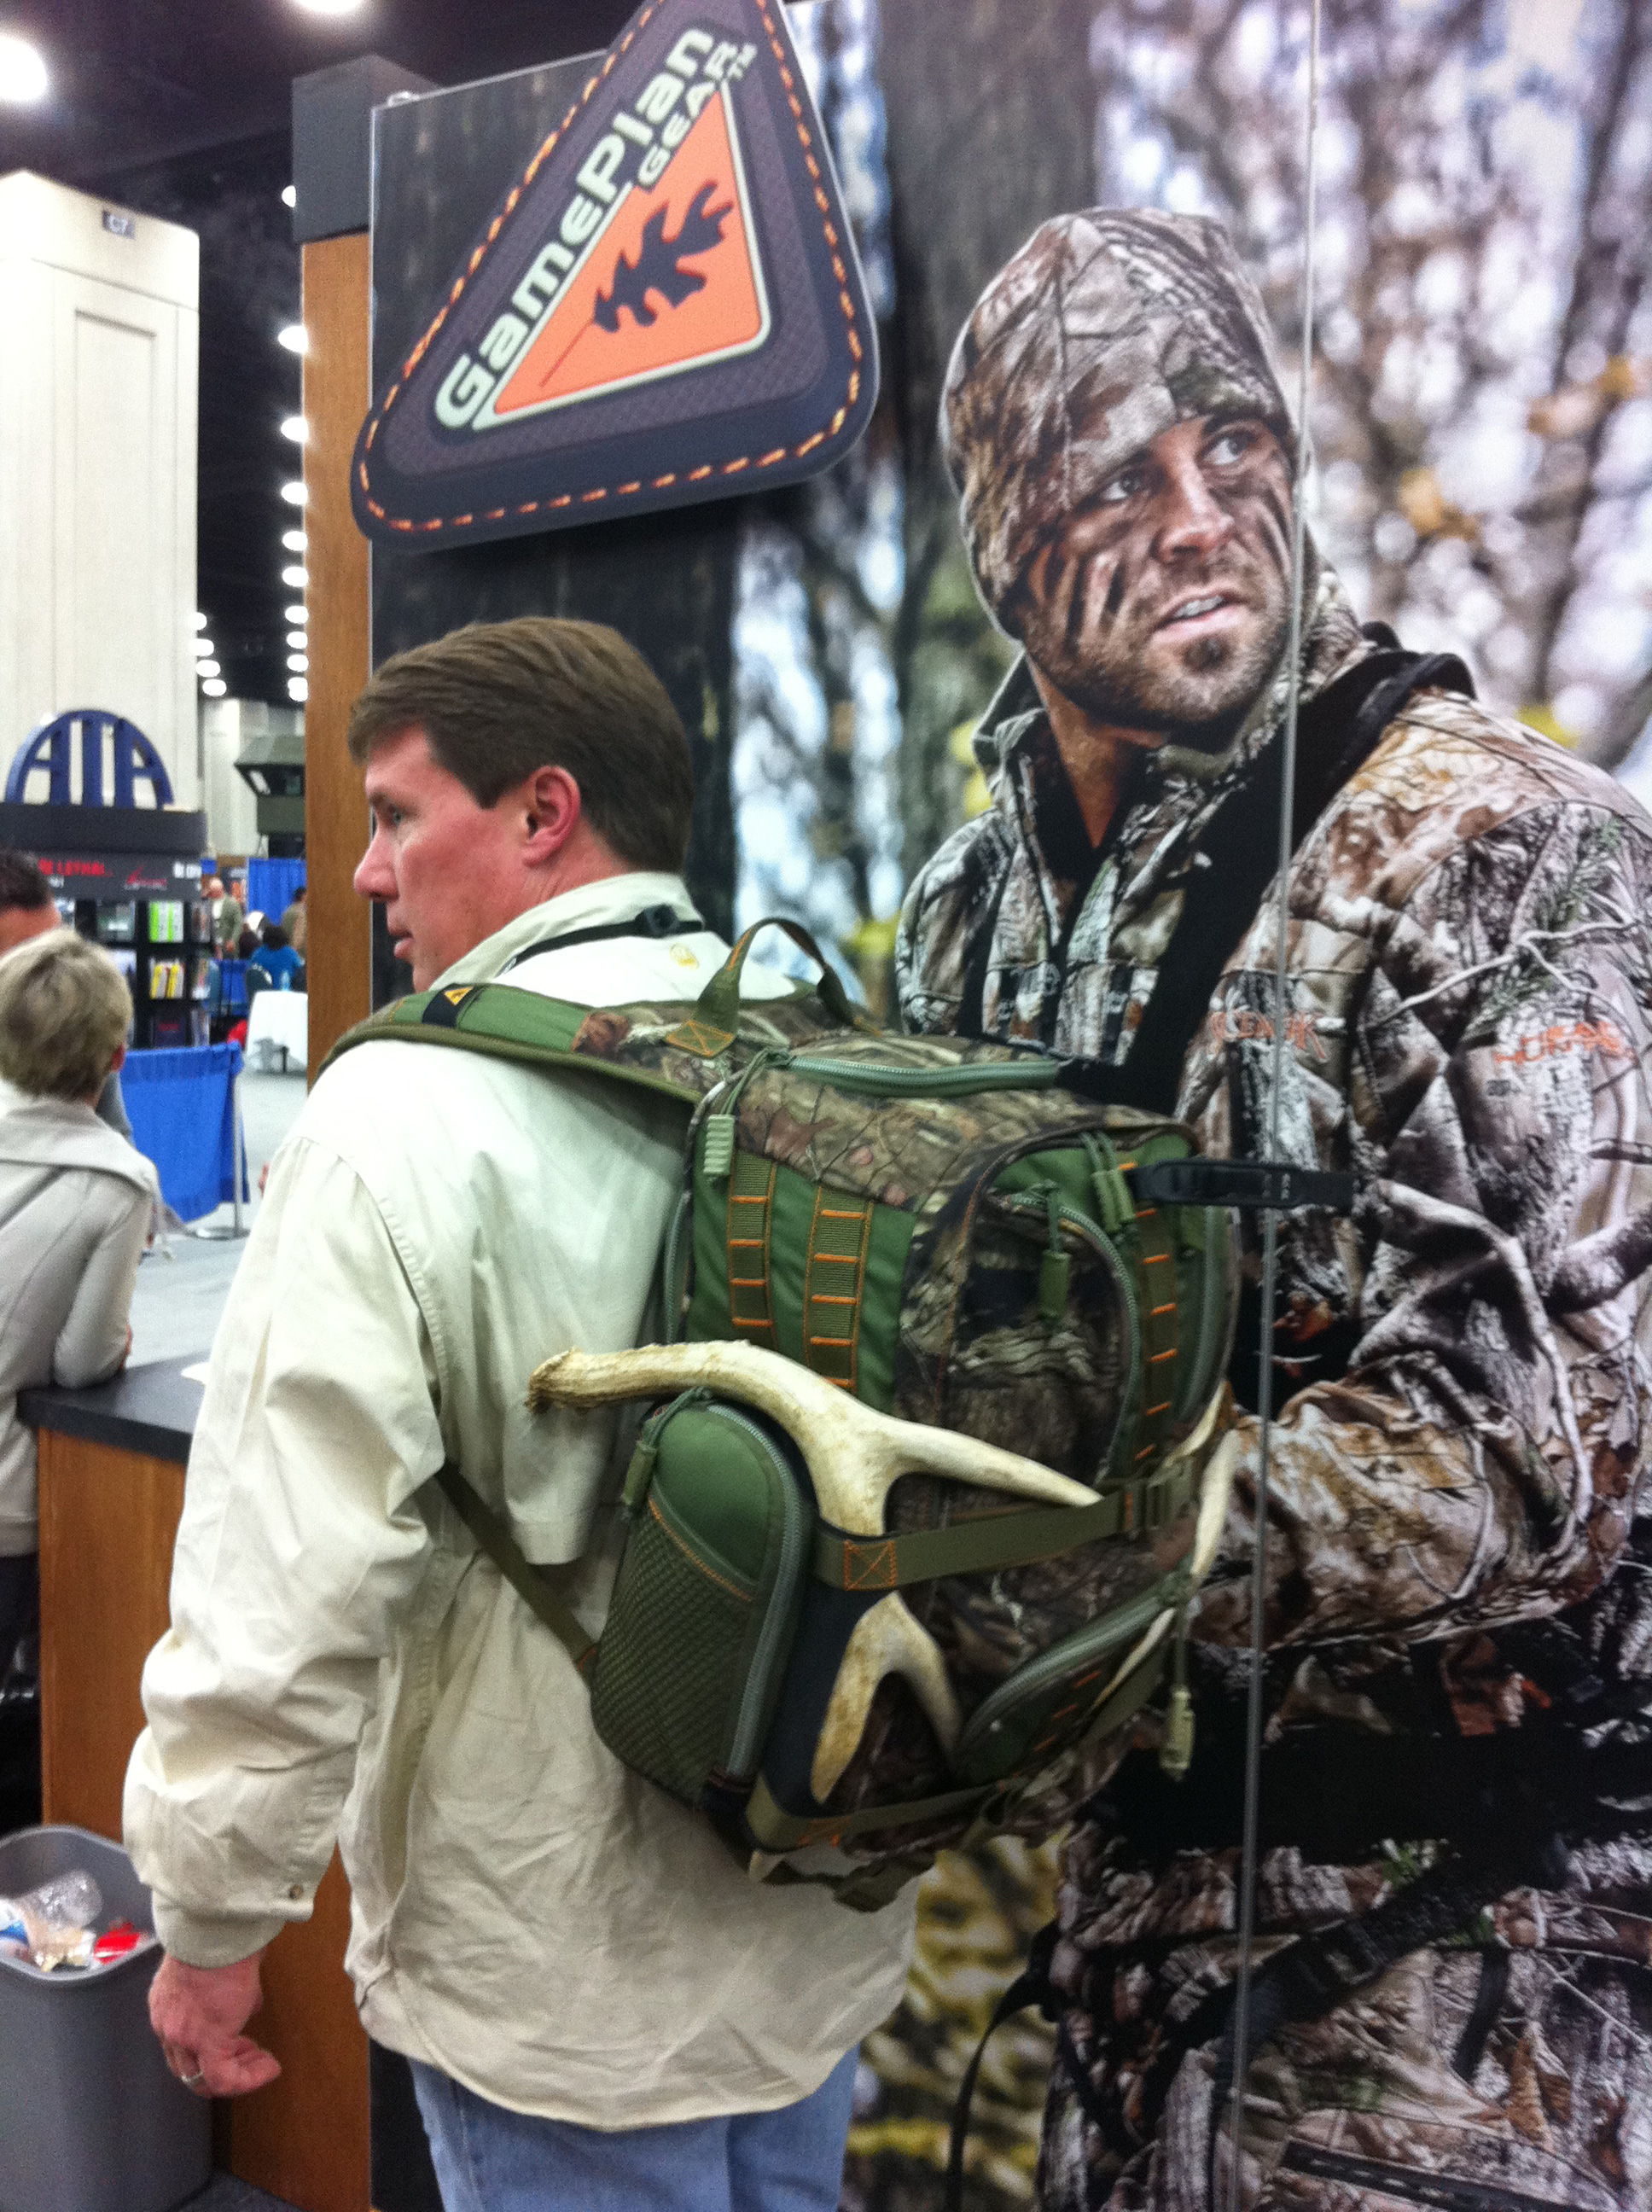 Hunting Check out this new GamePlan Gear pack with perfect straps for securing sheds and rattling antlers!